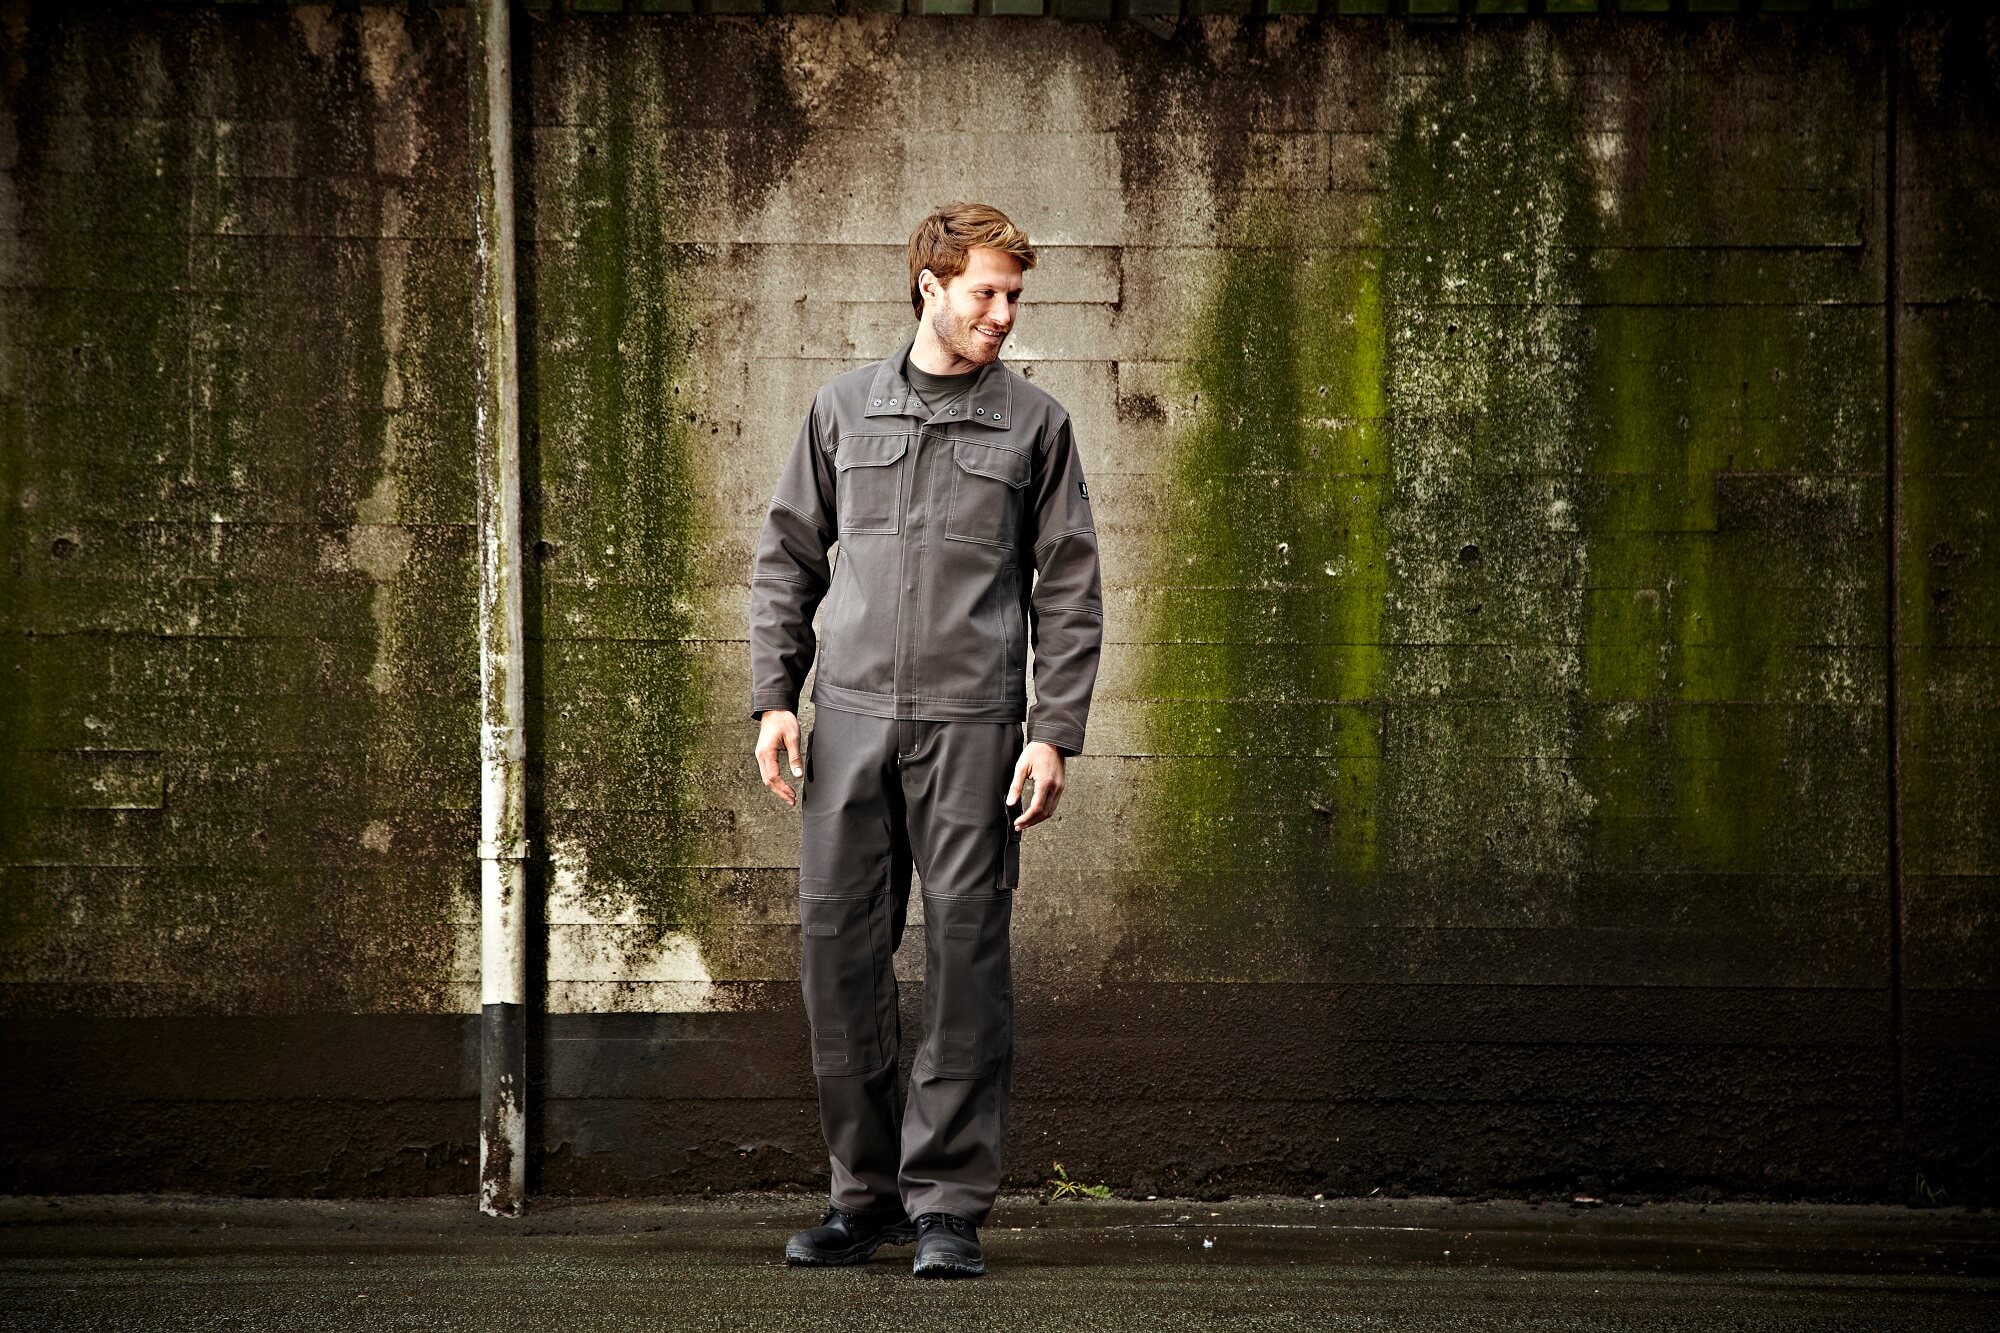 Man - Work Trousers & Jacket Grey - MASCOT® INDUSTRY - Environment